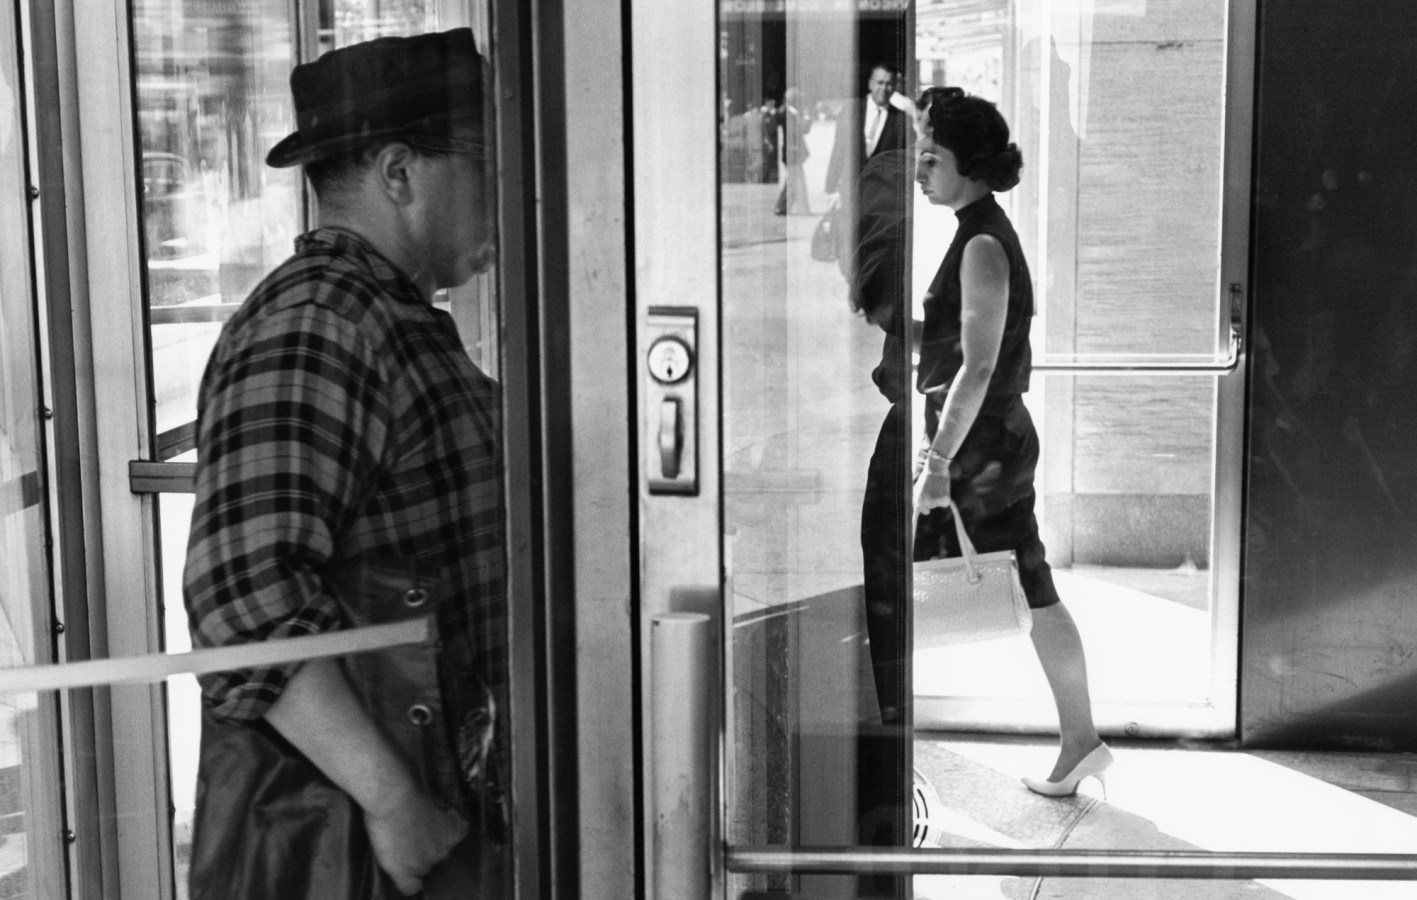 Black-and-white photograph of a man and woman entering and exiting a building with their faces obscured by doors